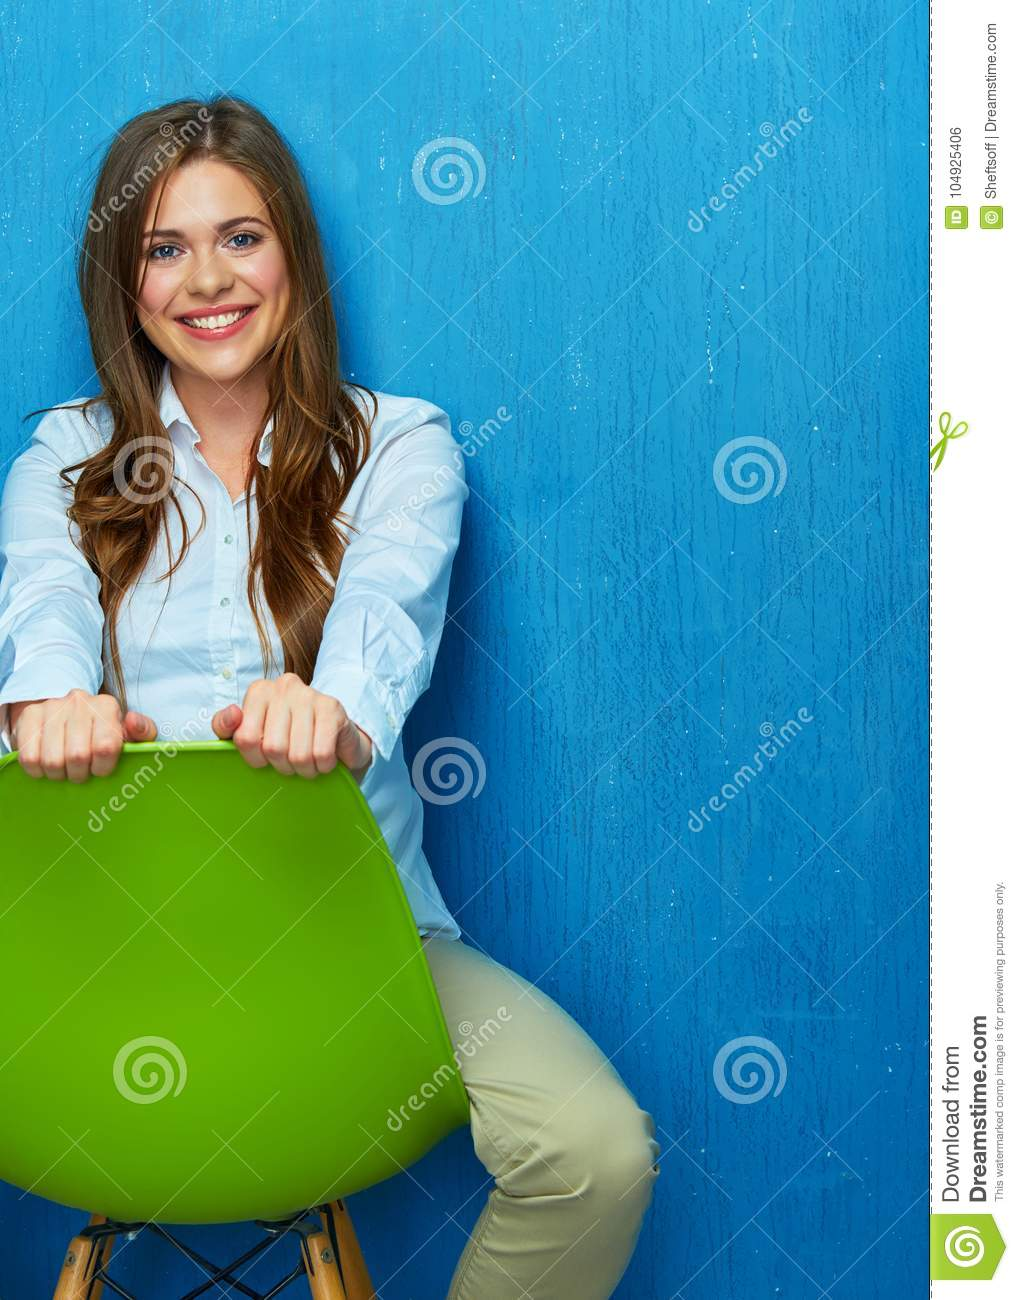 Beautiful young woman portrait sitting on chair.